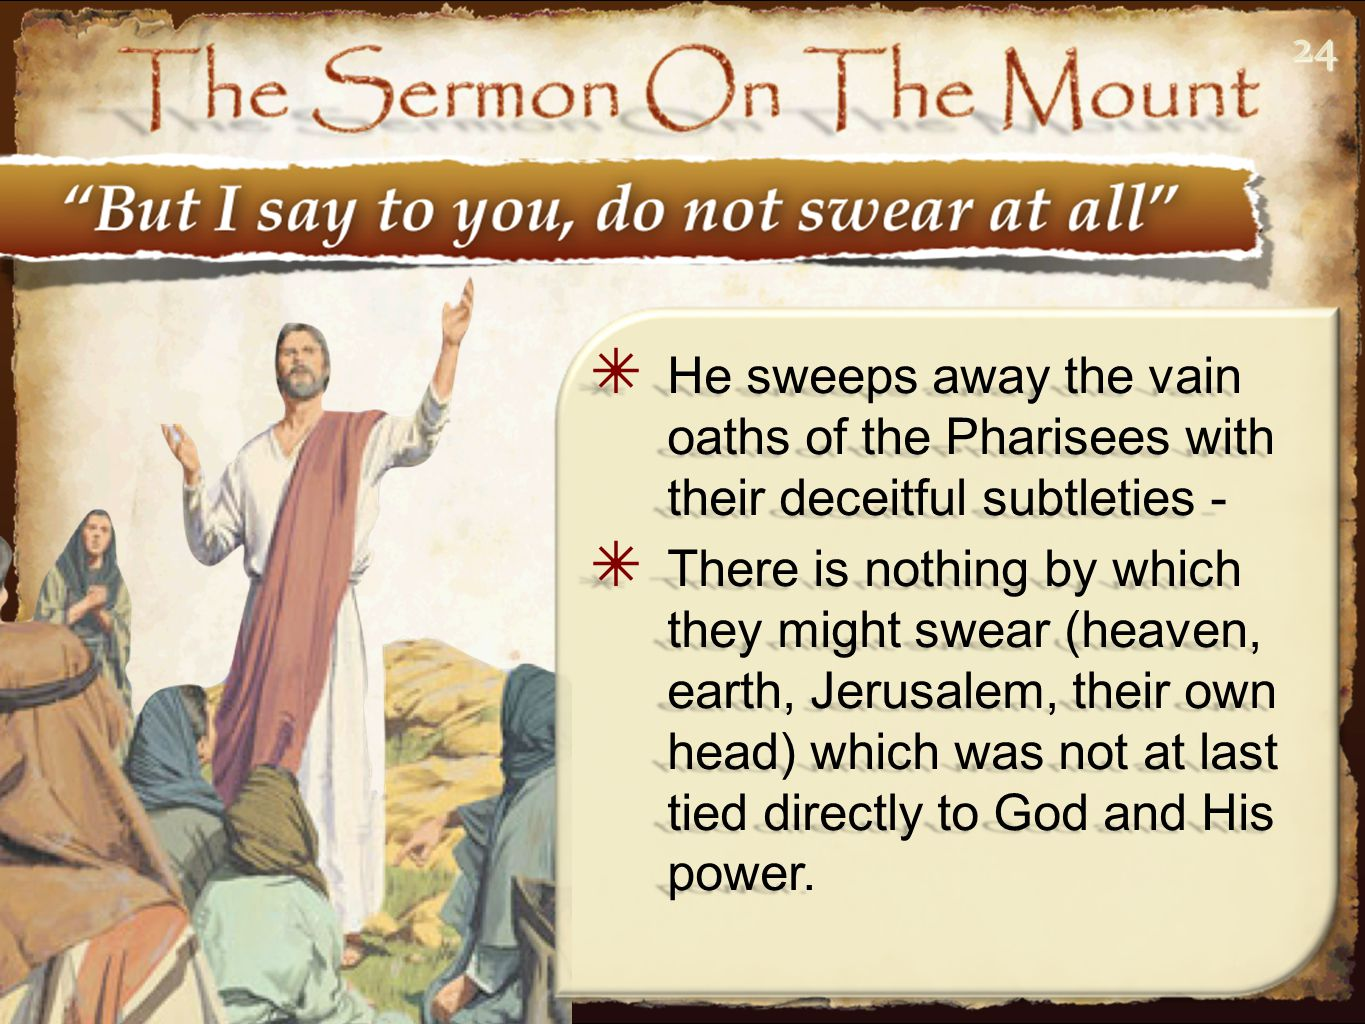 24 He sweeps away the vain oaths of the Pharisees with their deceitful subtleties -